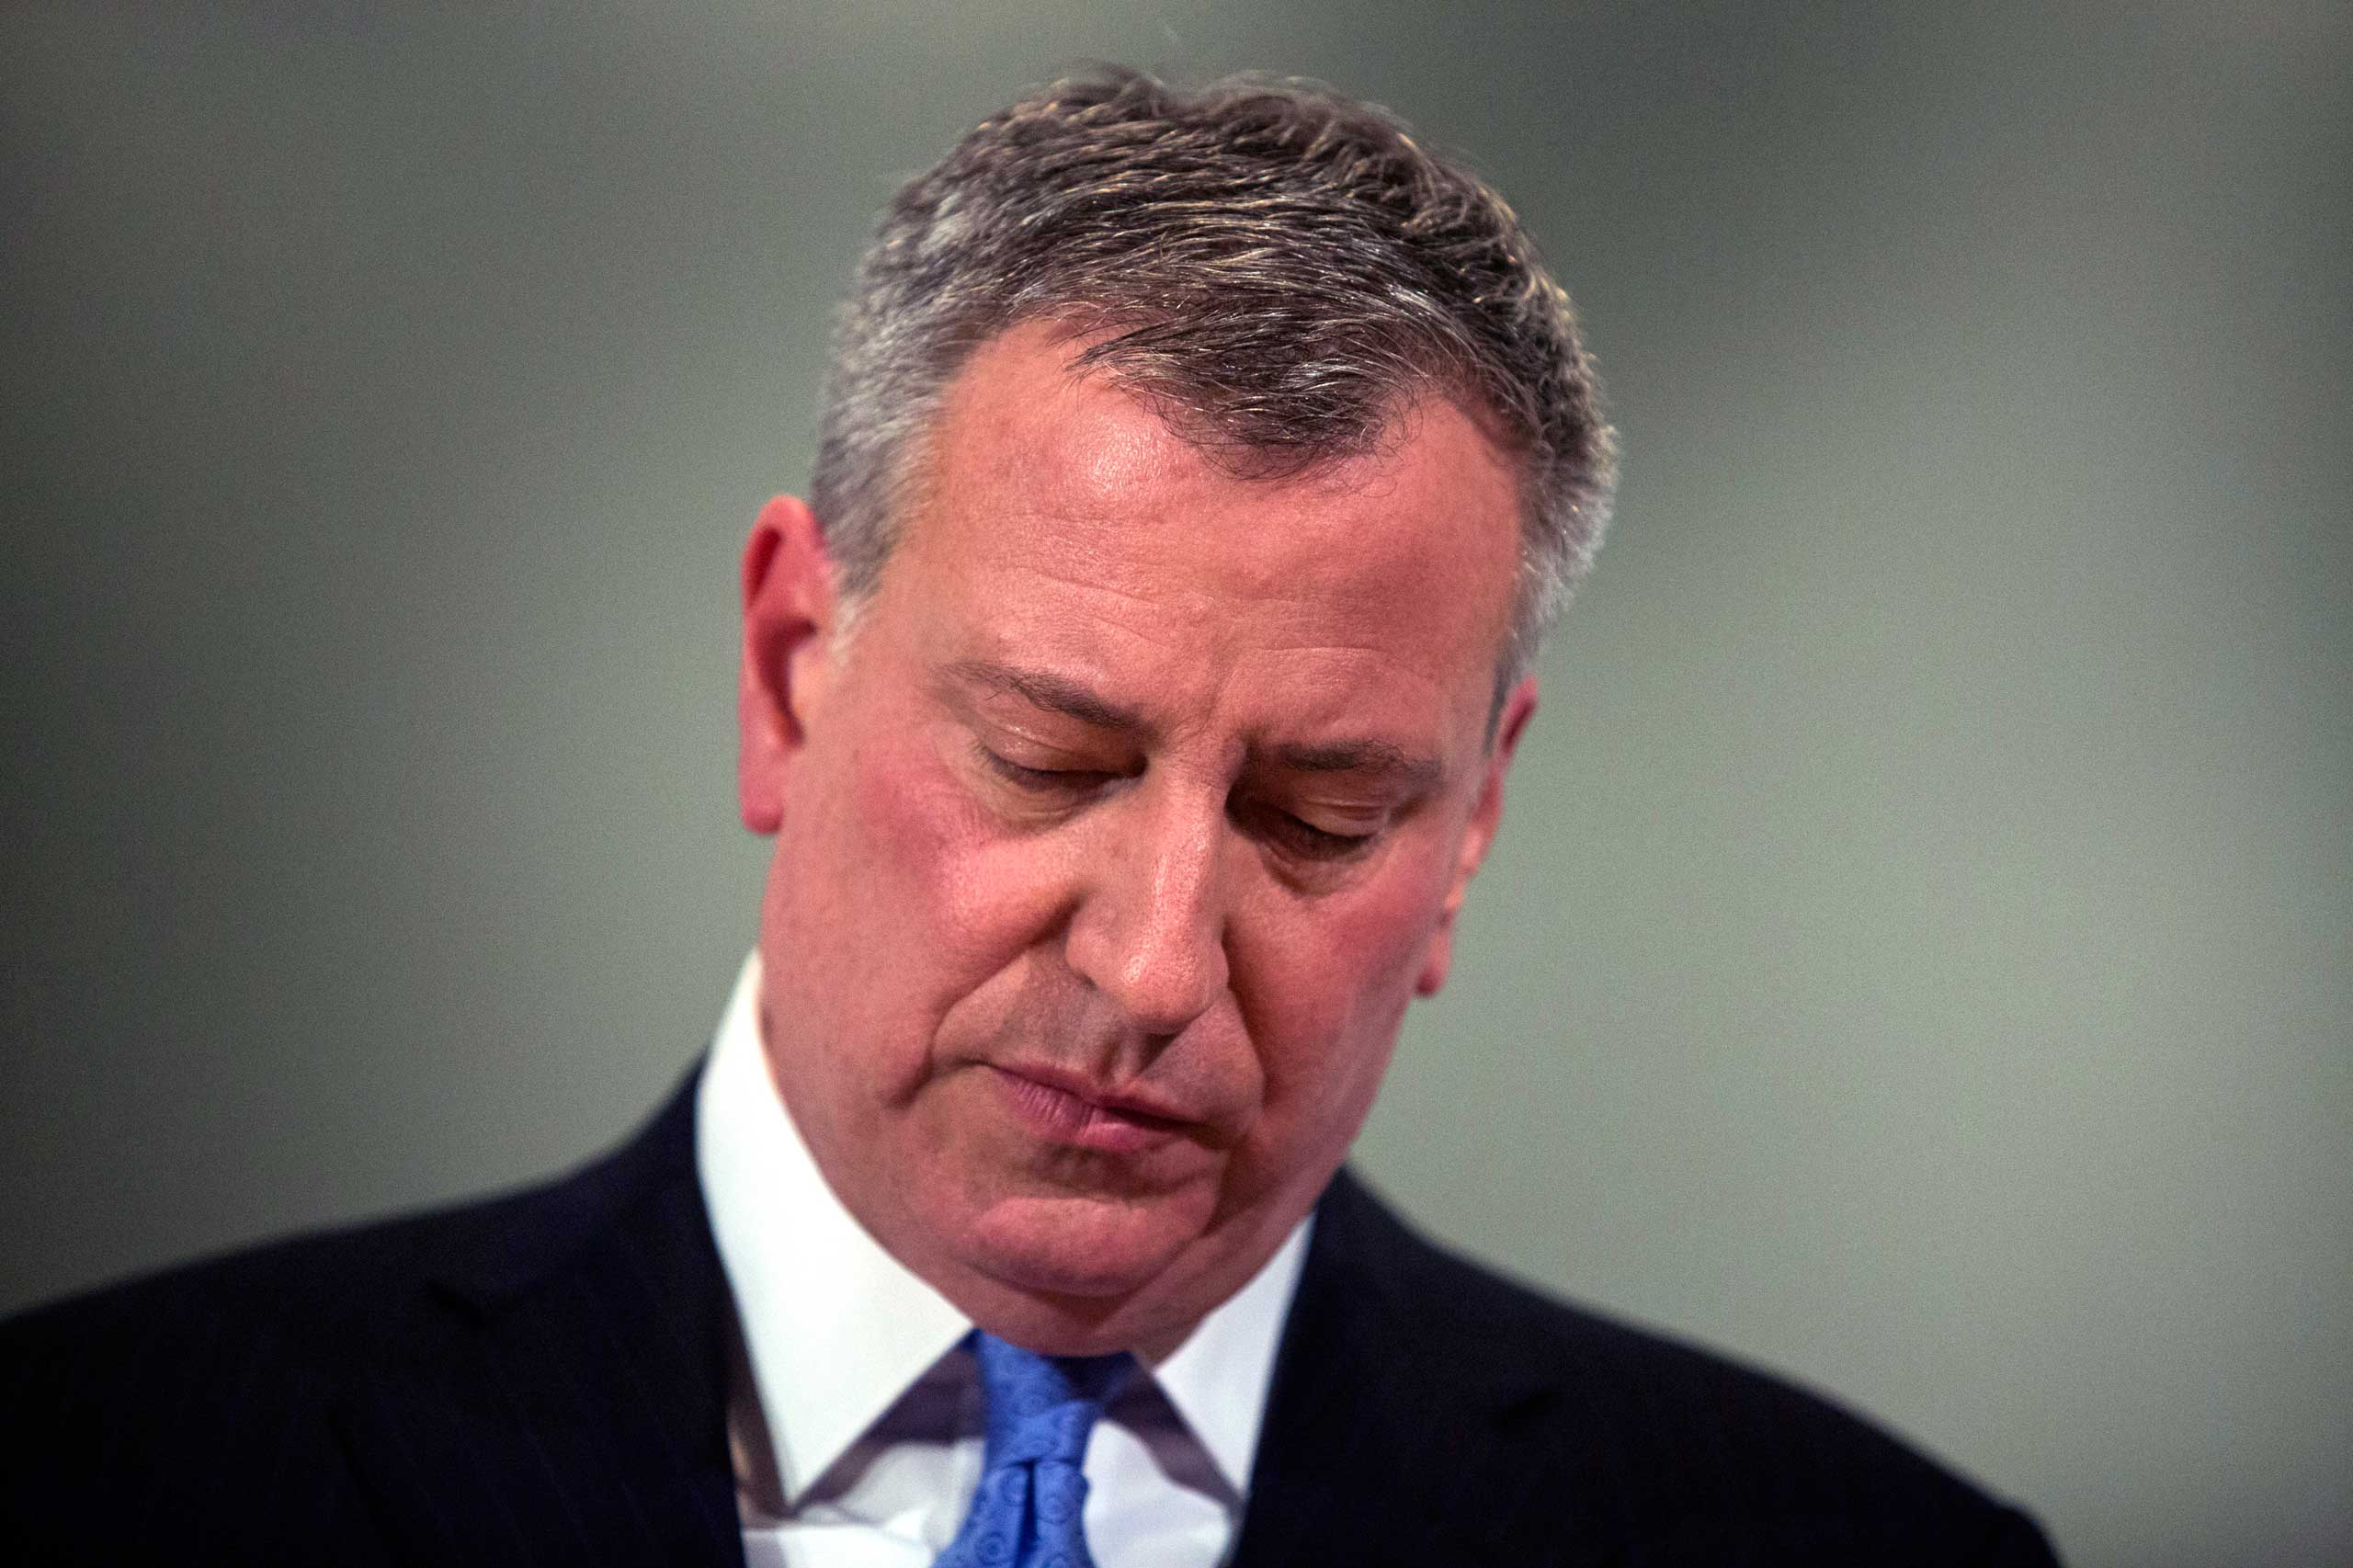 New York City Mayor Bill de Blasio speaks to the media during a news conference after two NYPD officers were shot, in Brooklyn, New York, Dec. 20, 2014.